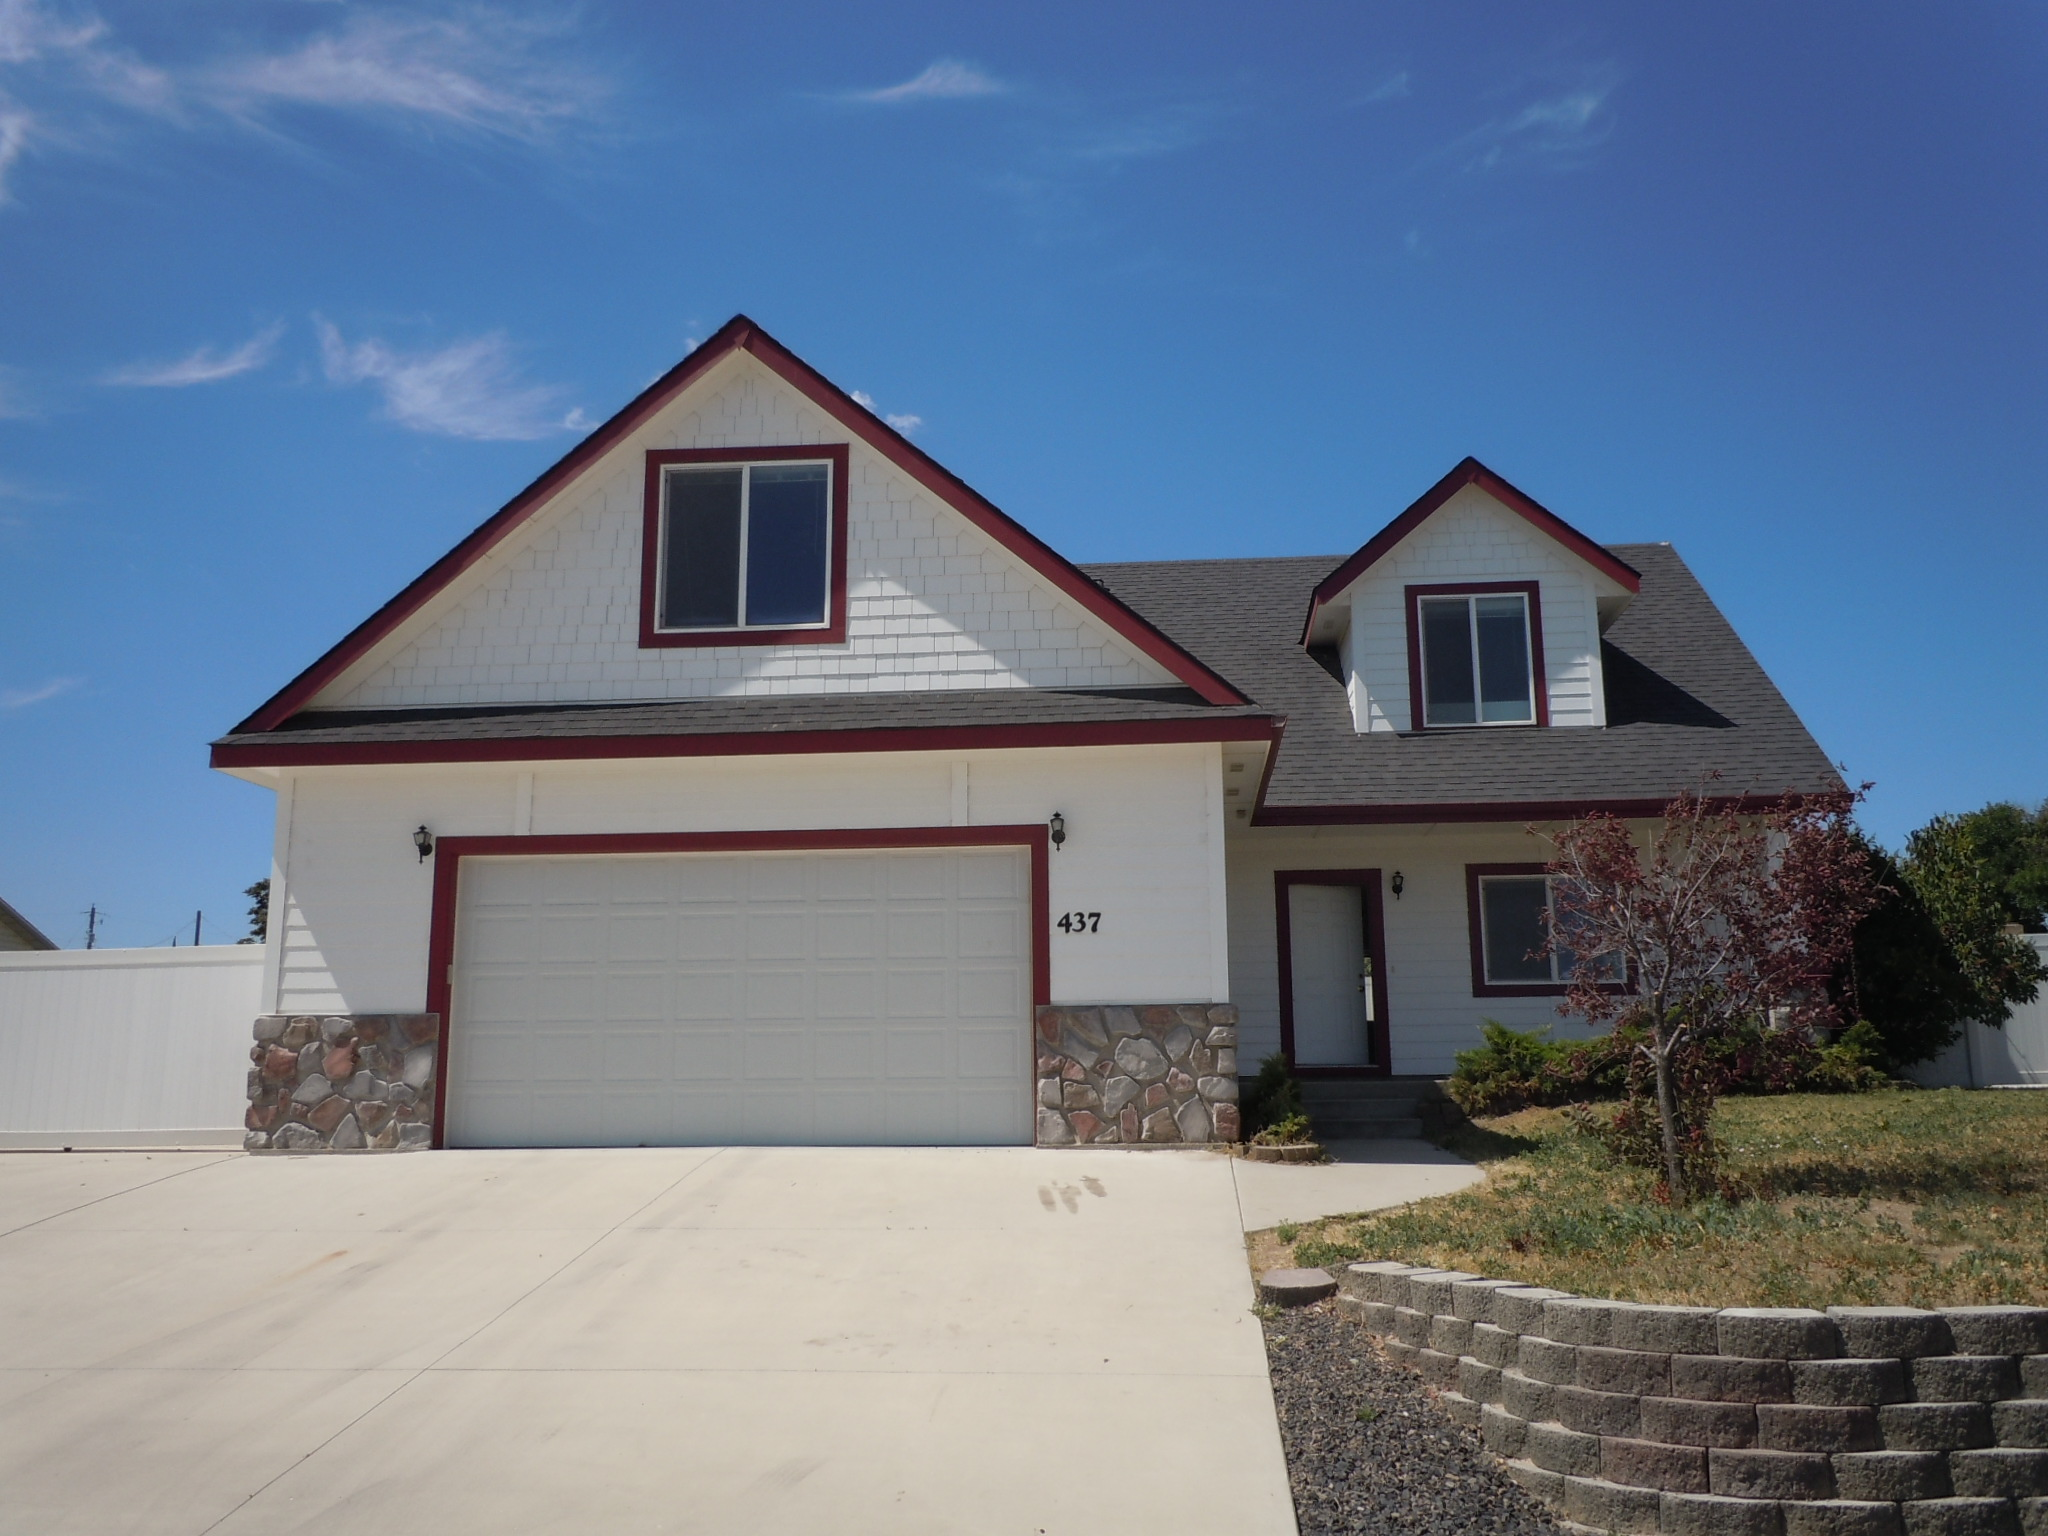 great buy on a hud home trustidaho